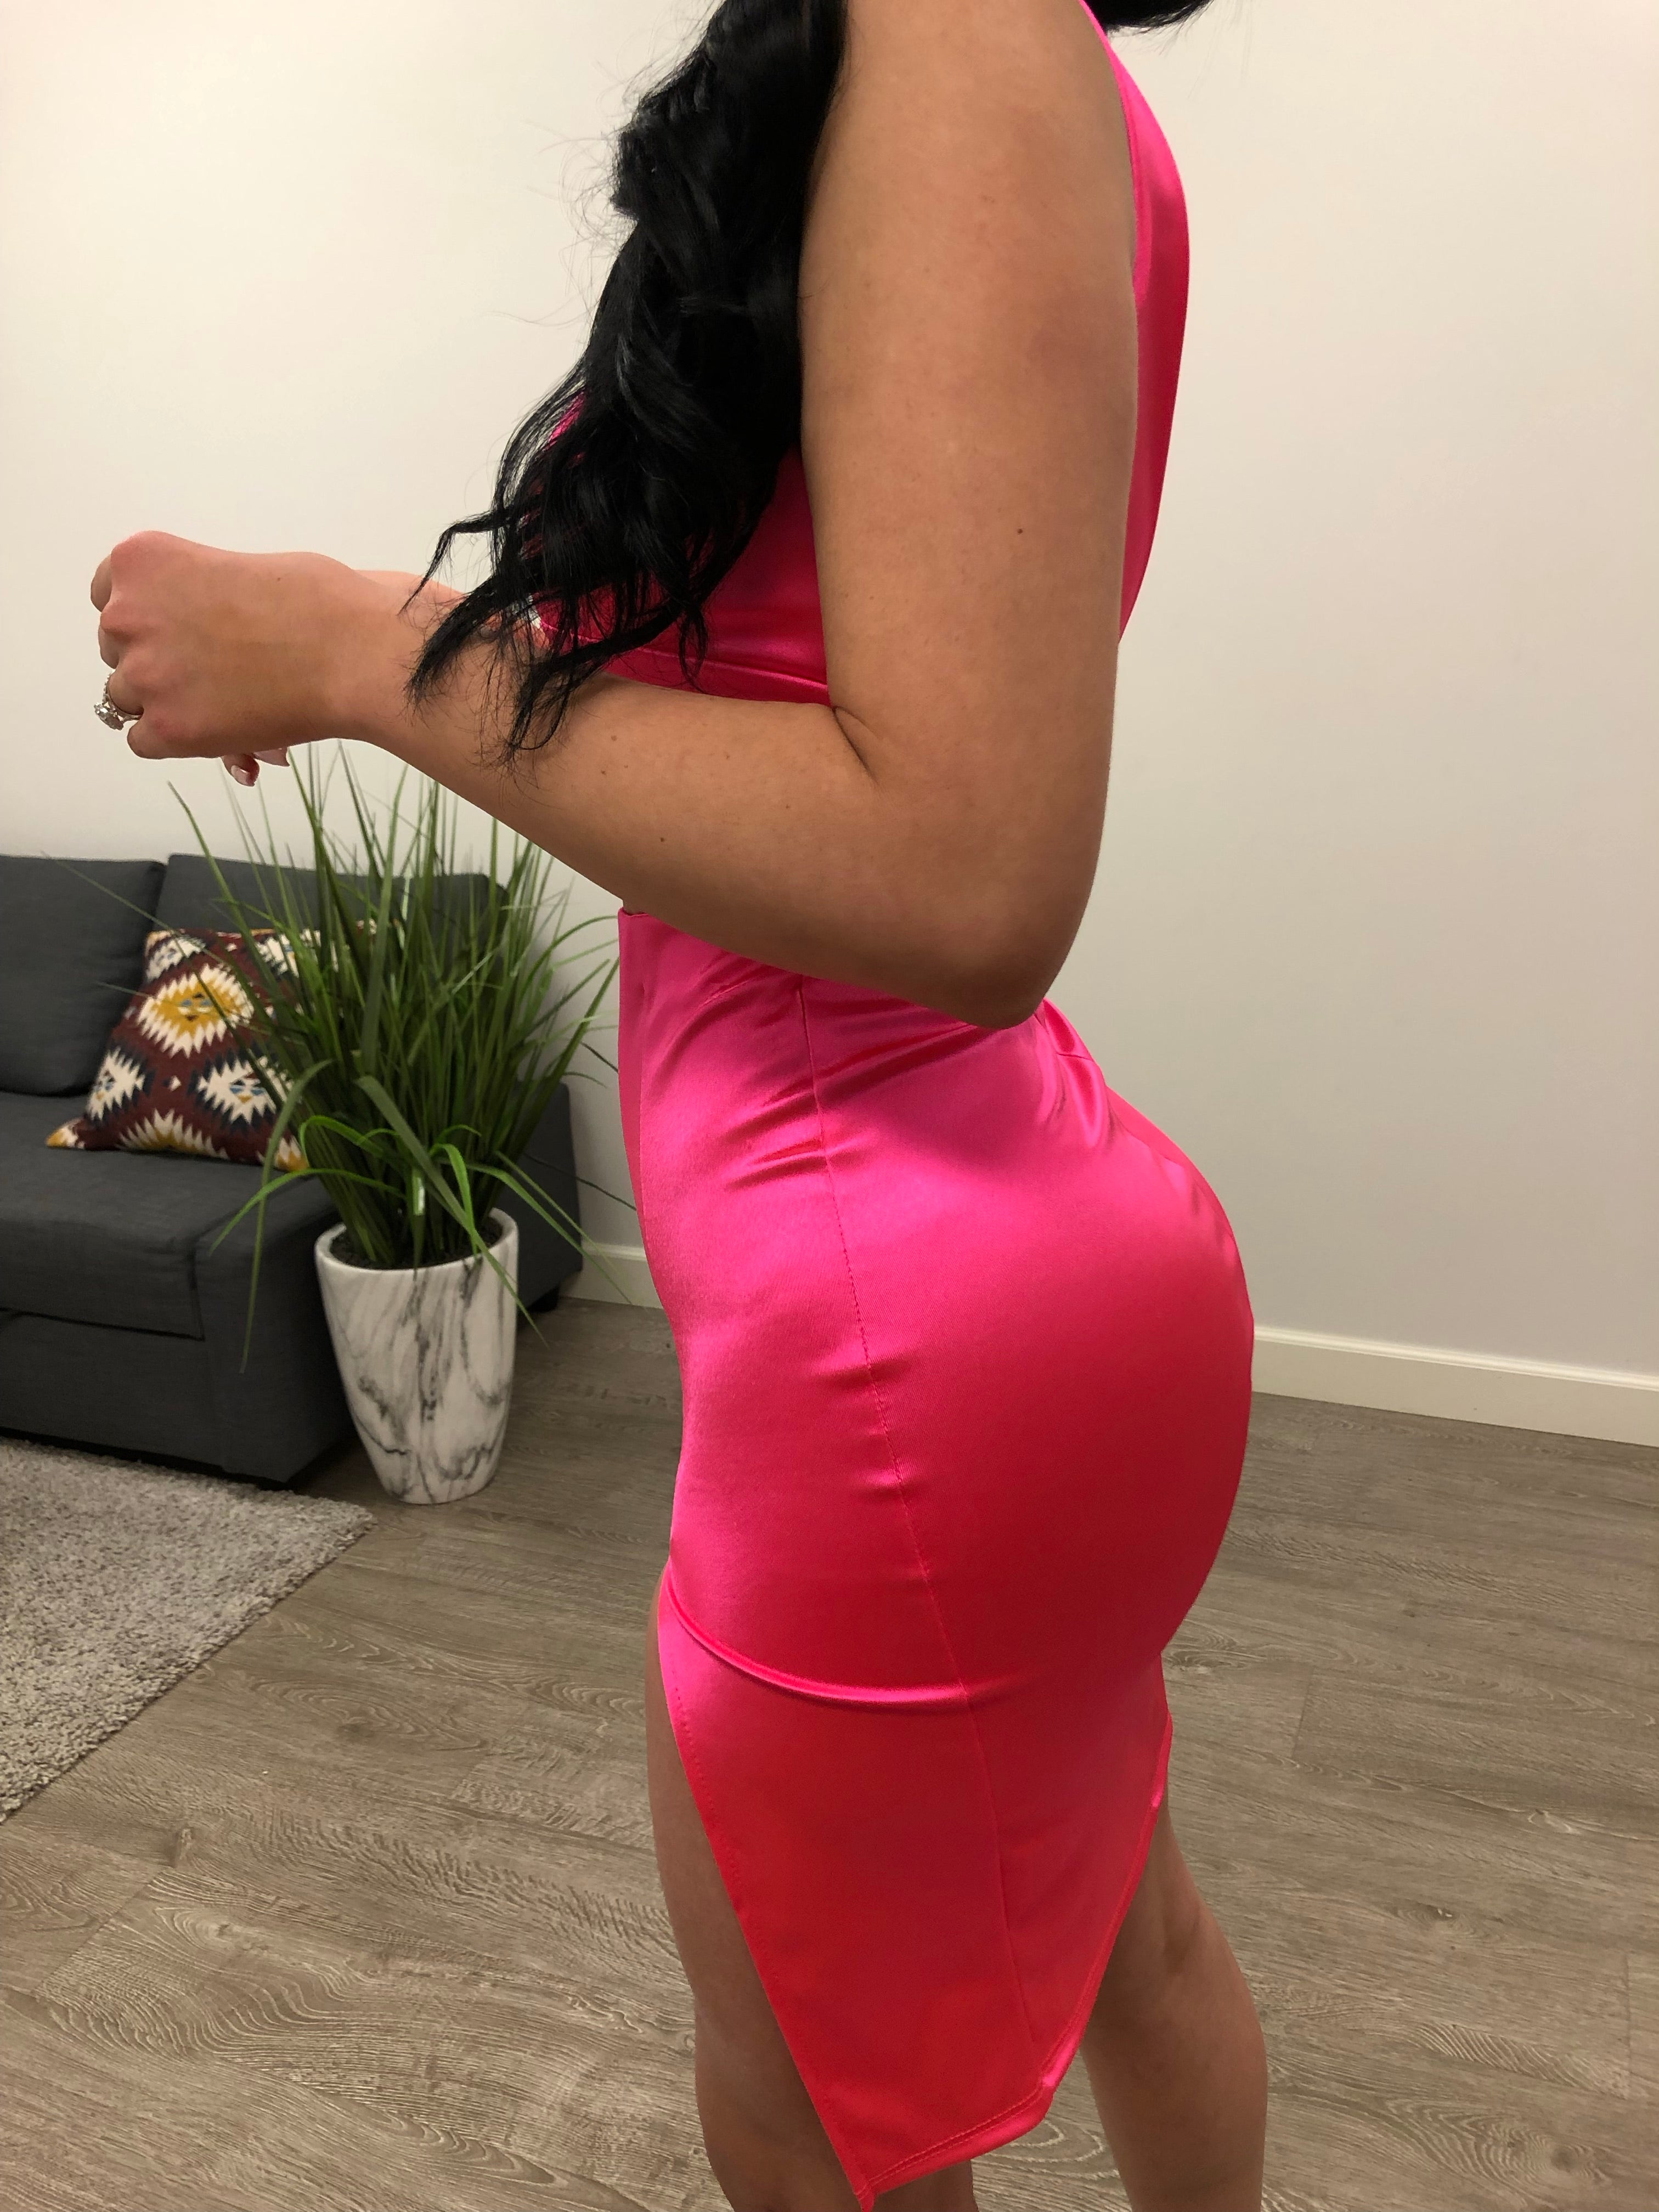 pink satin 2 piece, top has one spaghetti strap and one thick strap, low v cut neckline shows full cleavage length mid stomach , skirt length mid thigh , slit on left side of skirt